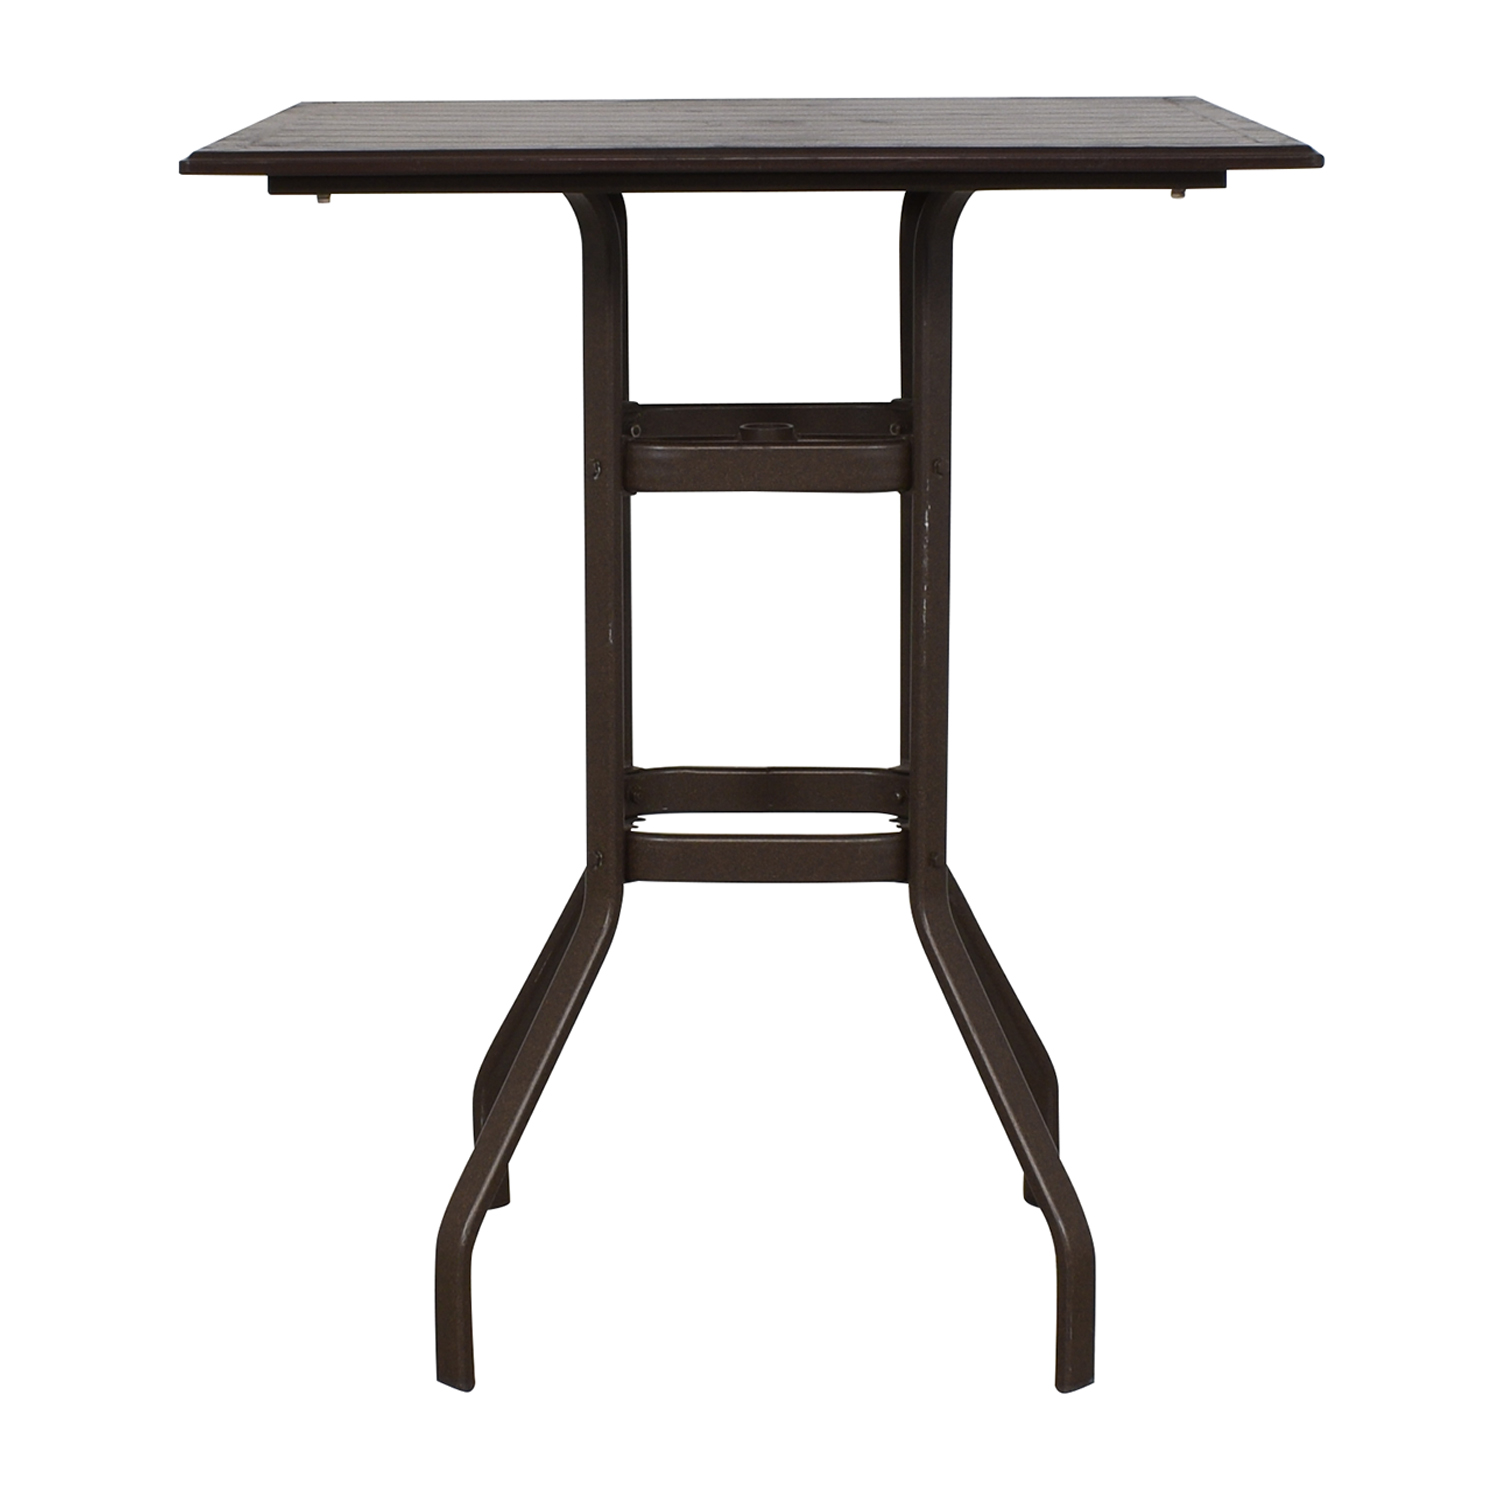 Windward Design Group Windward Design Group Dining Table for sale